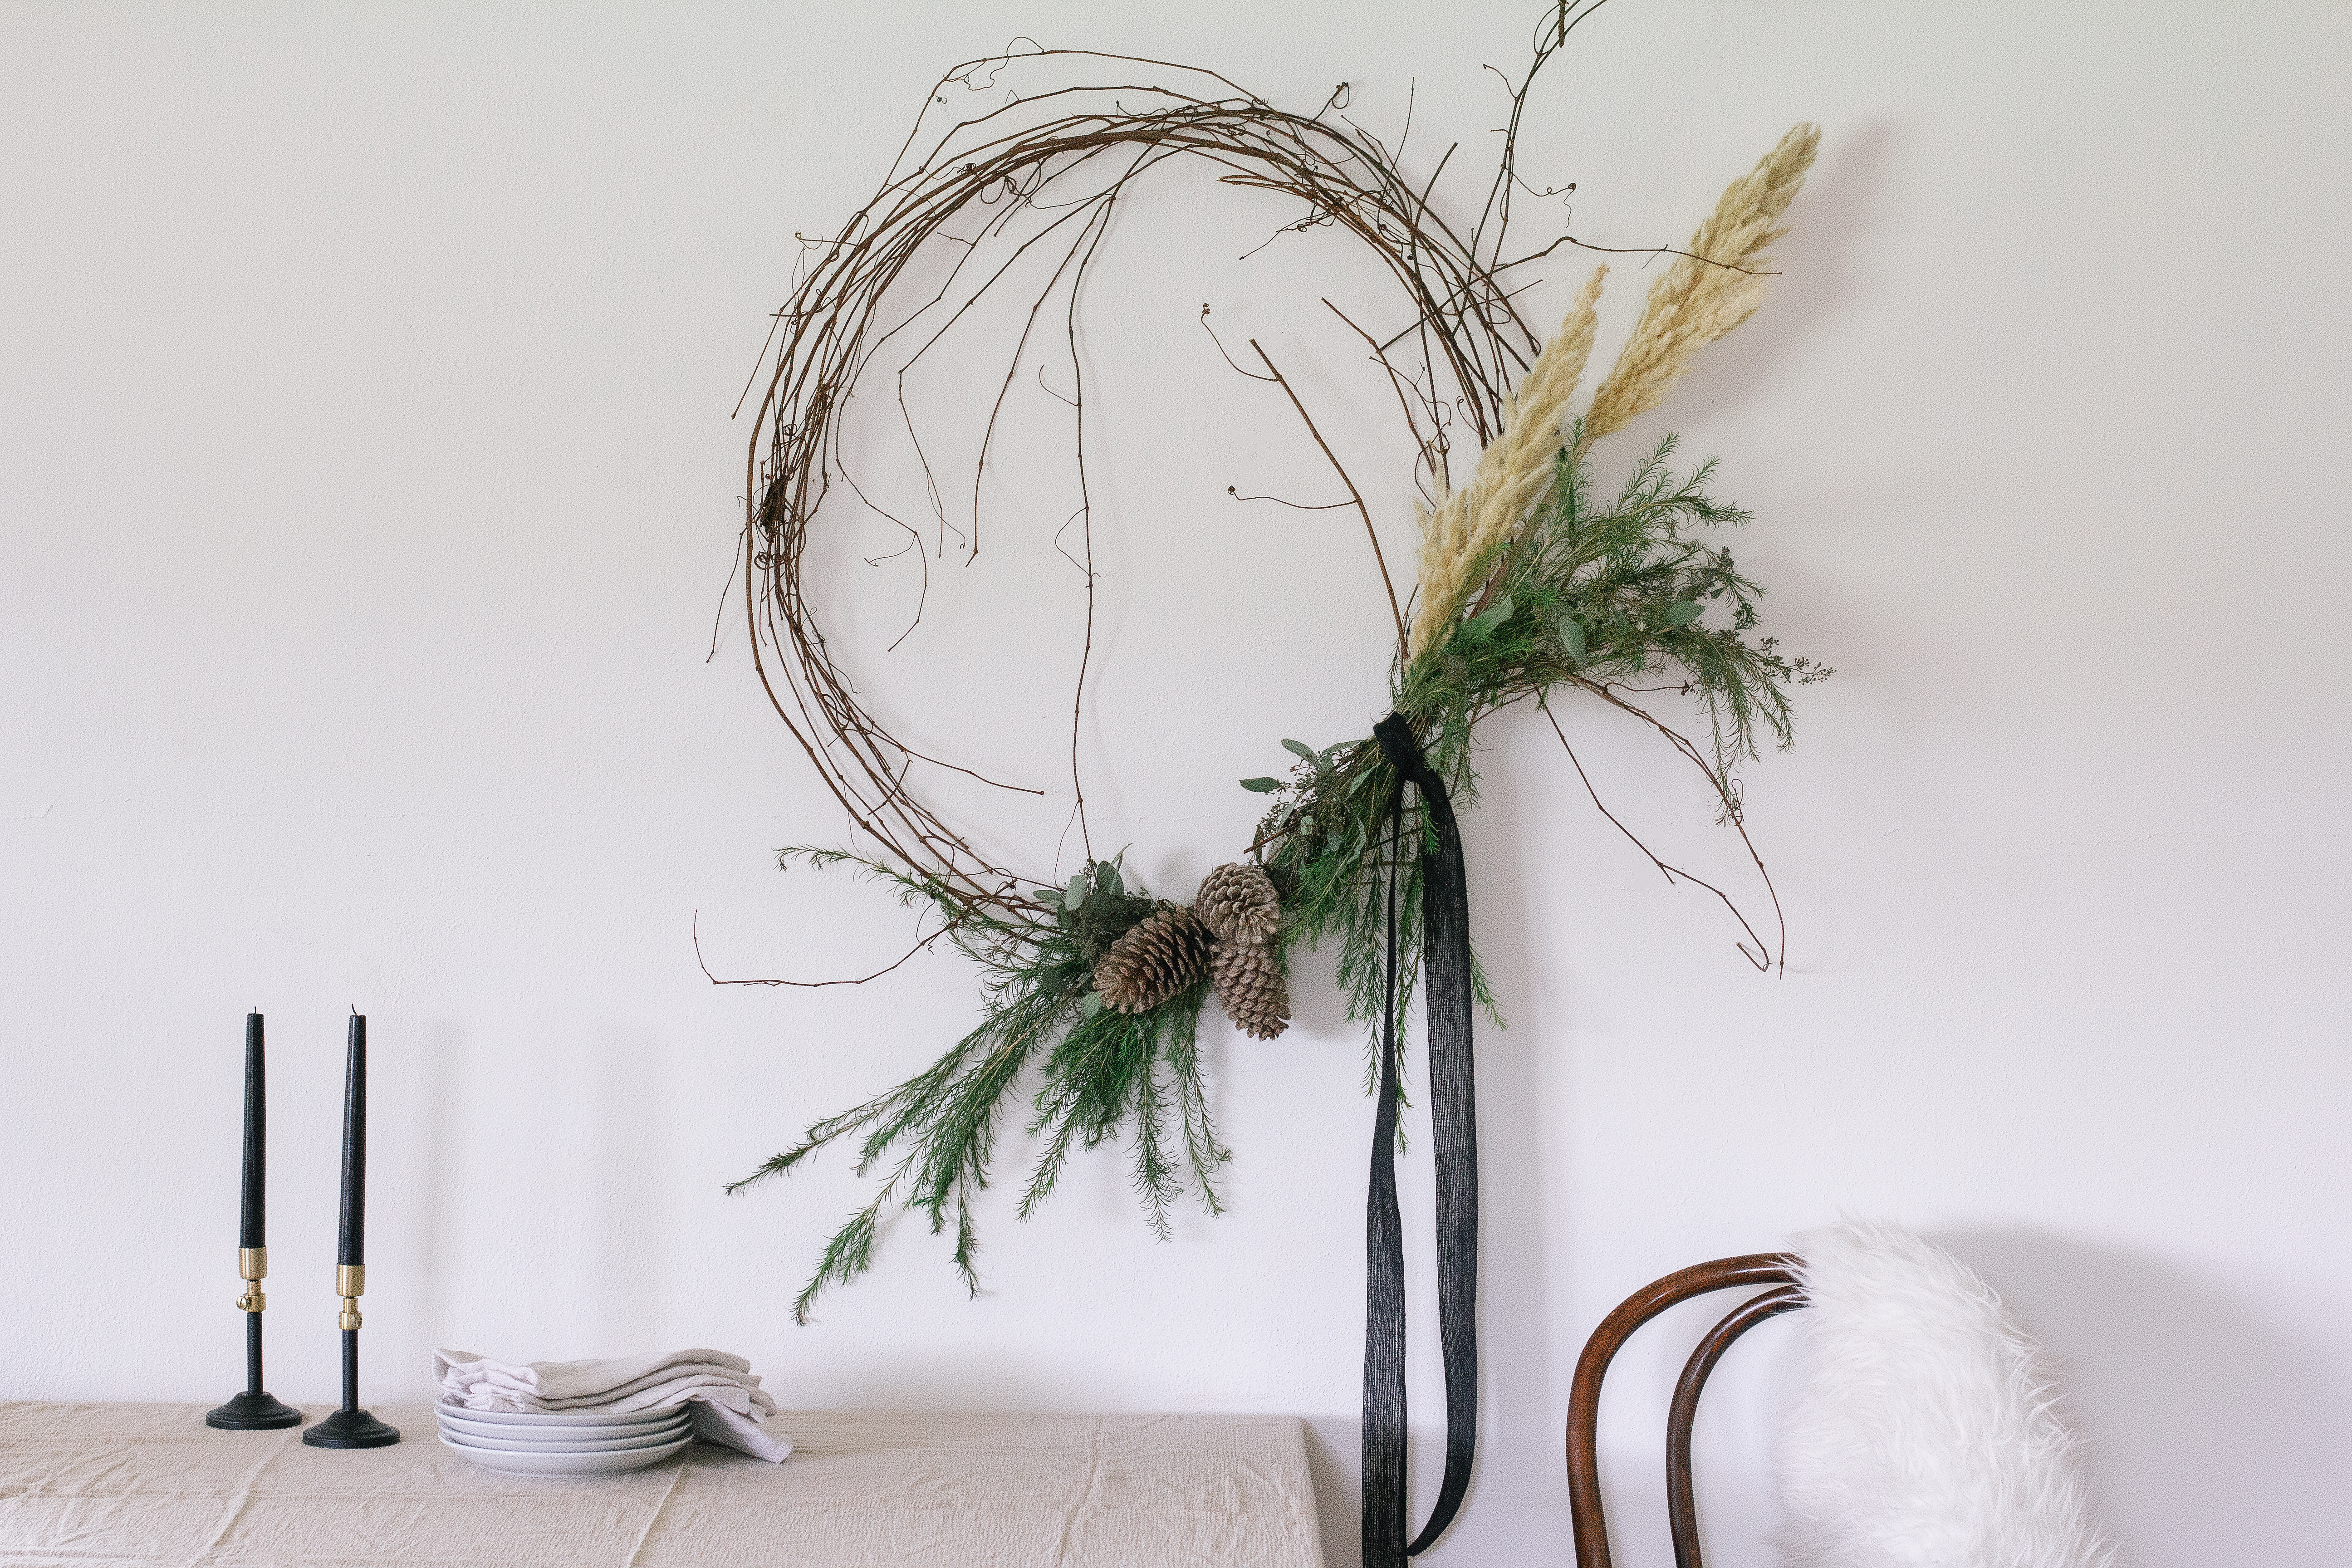 A Little Rustic, a Little Unruly, This Wreath Totally Appeals to Our Holiday Sensibilities